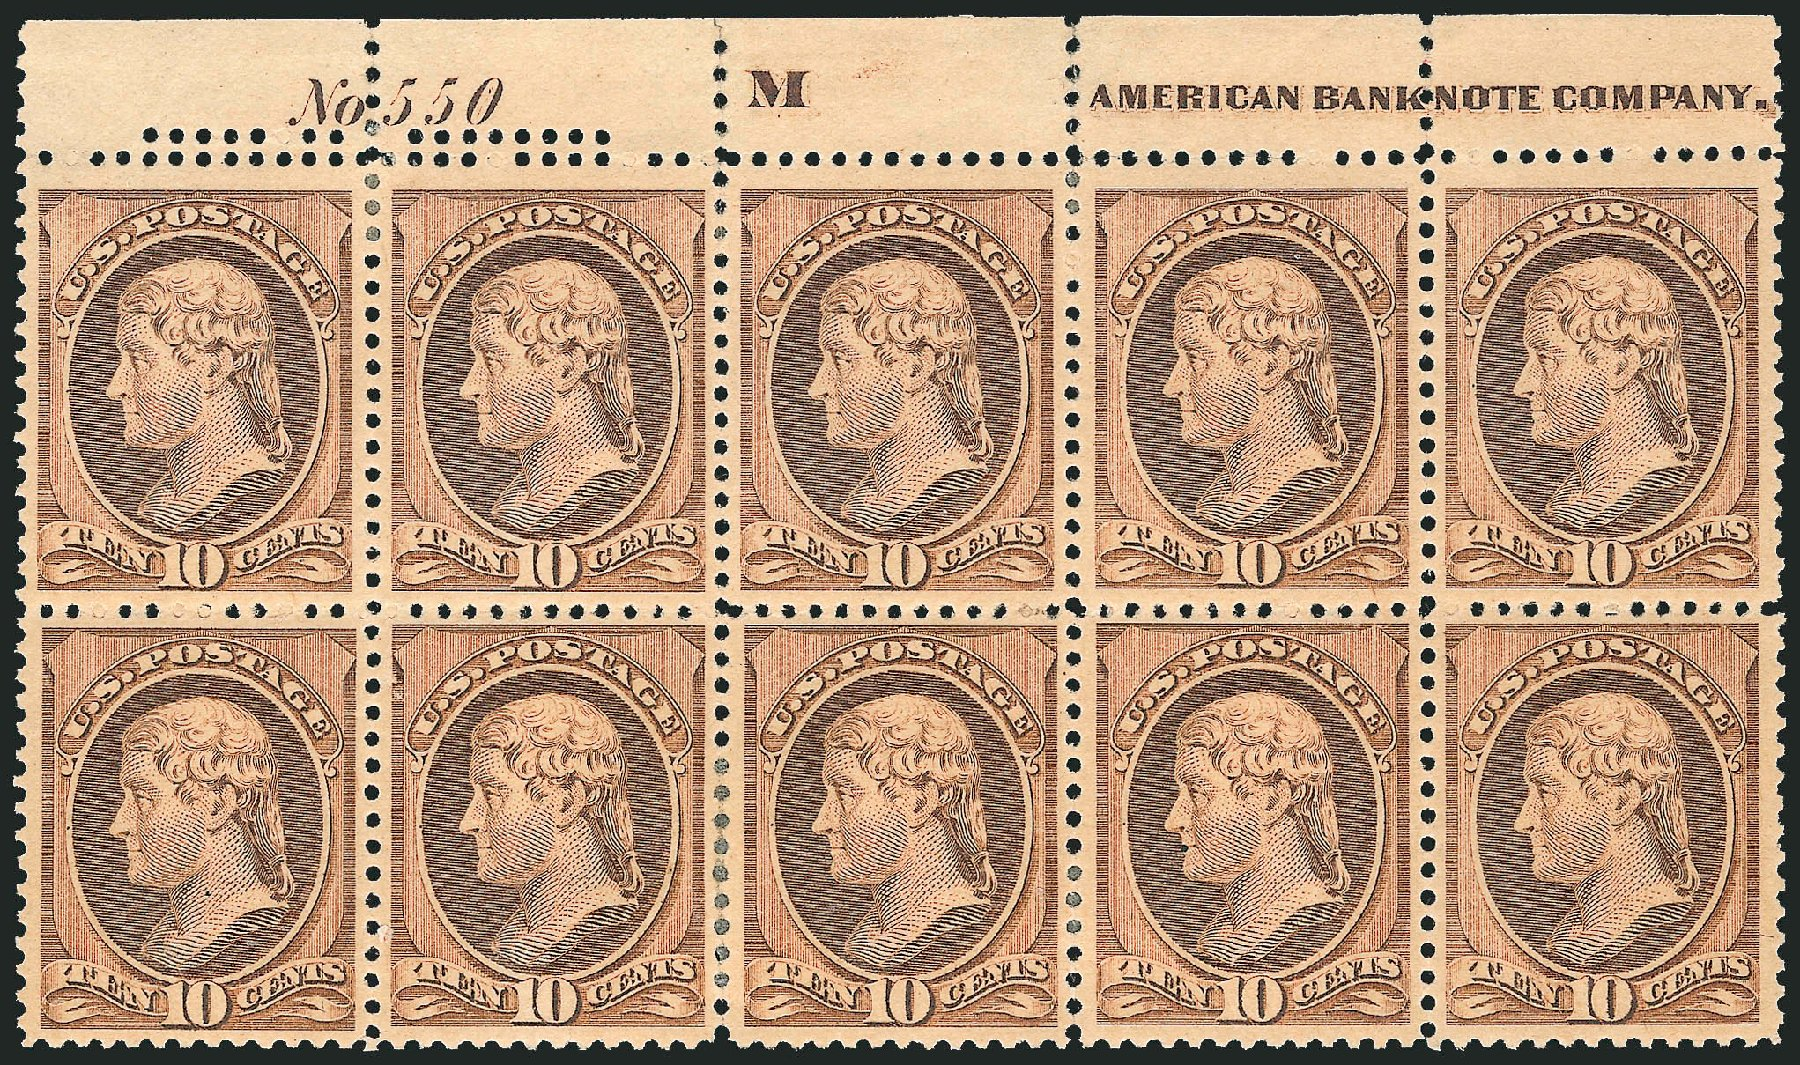 US Stamps Price Scott 209 - 10c 1882 Thomas Jefferson. Robert Siegel Auction Galleries, Apr 2015, Sale 1096, Lot 366